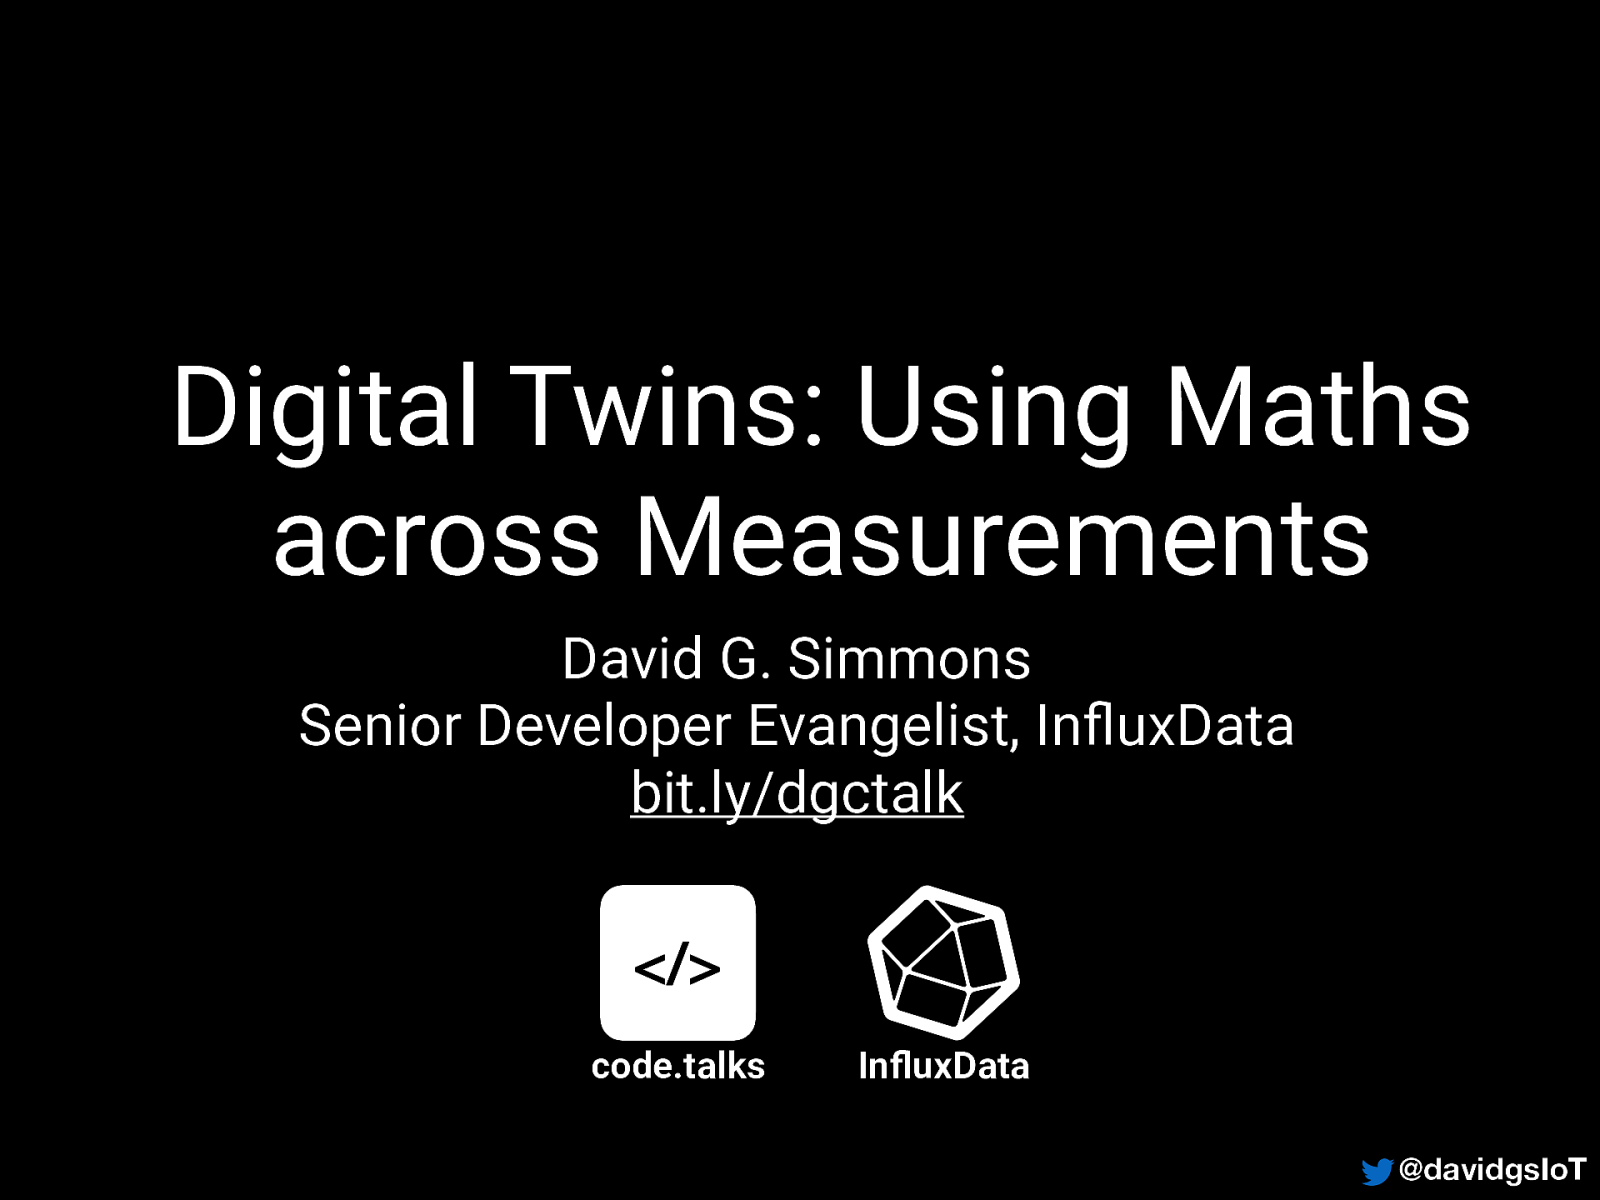 Digital Twins: Using Maths across Measurements